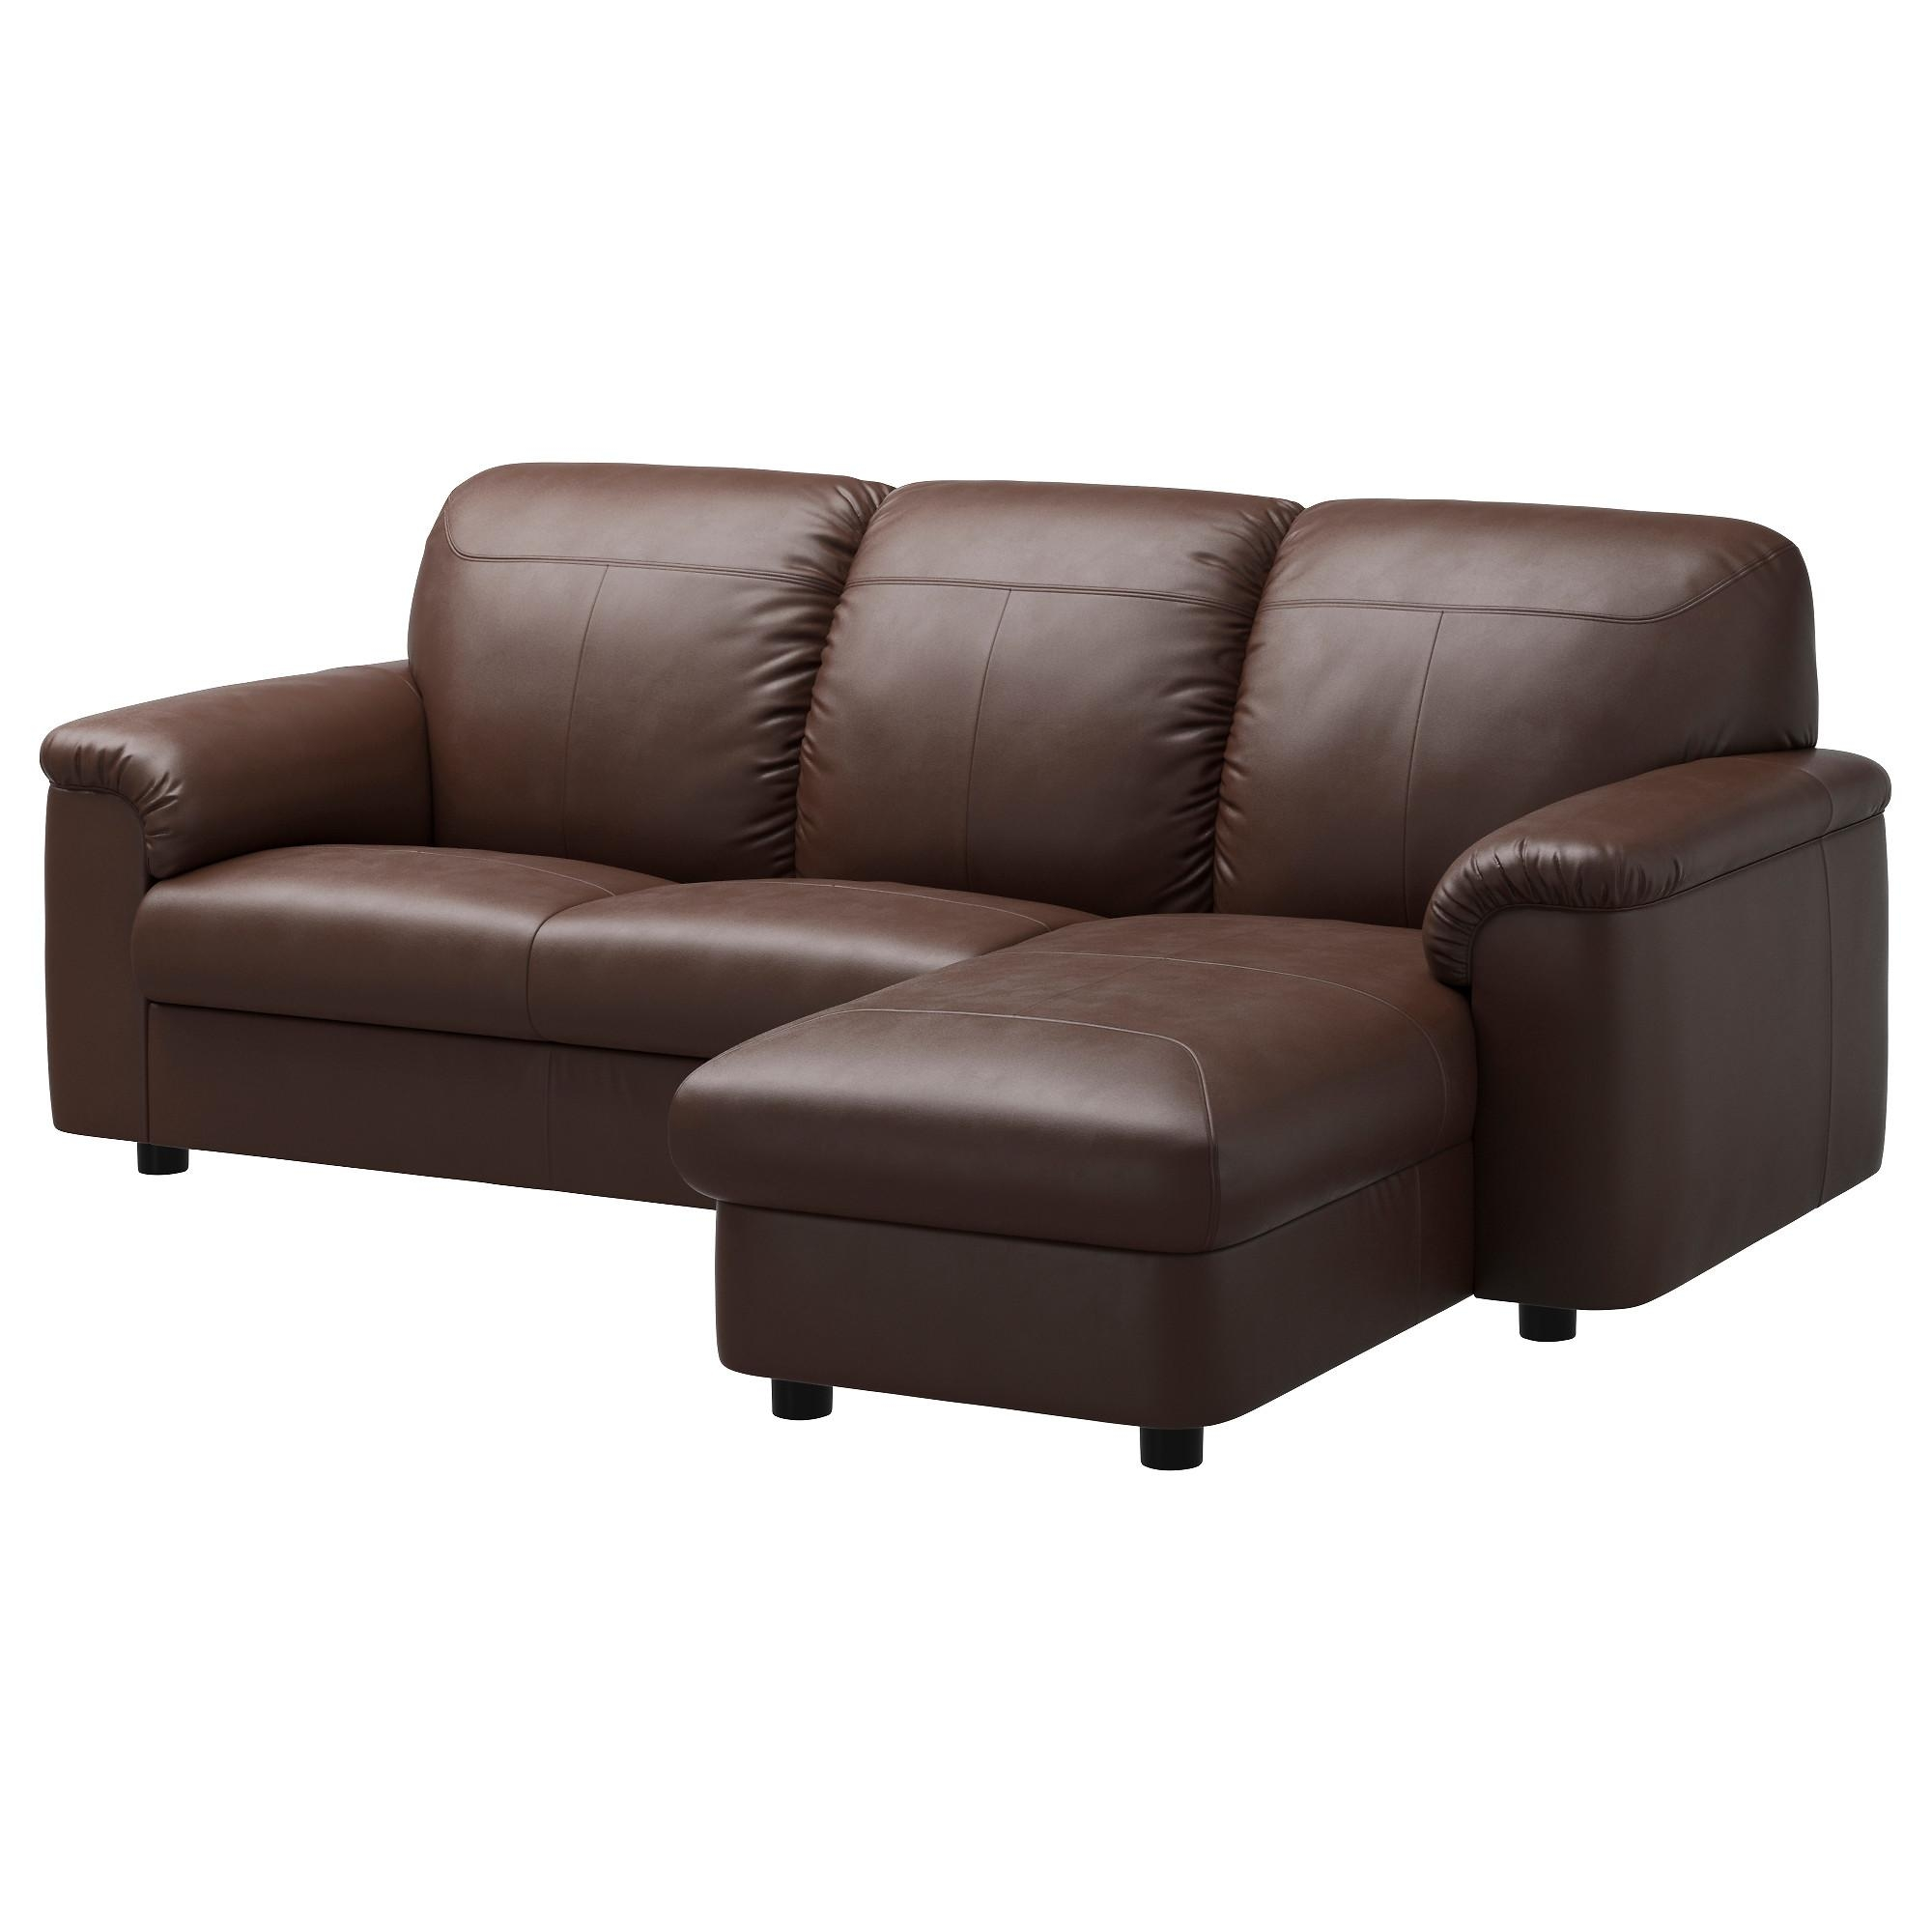 Timsfors Two Seat Sofa With Chaise Longue Mjuk/kimstad Dark Brown Regarding Ikea Two Seater Sofas (View 12 of 20)